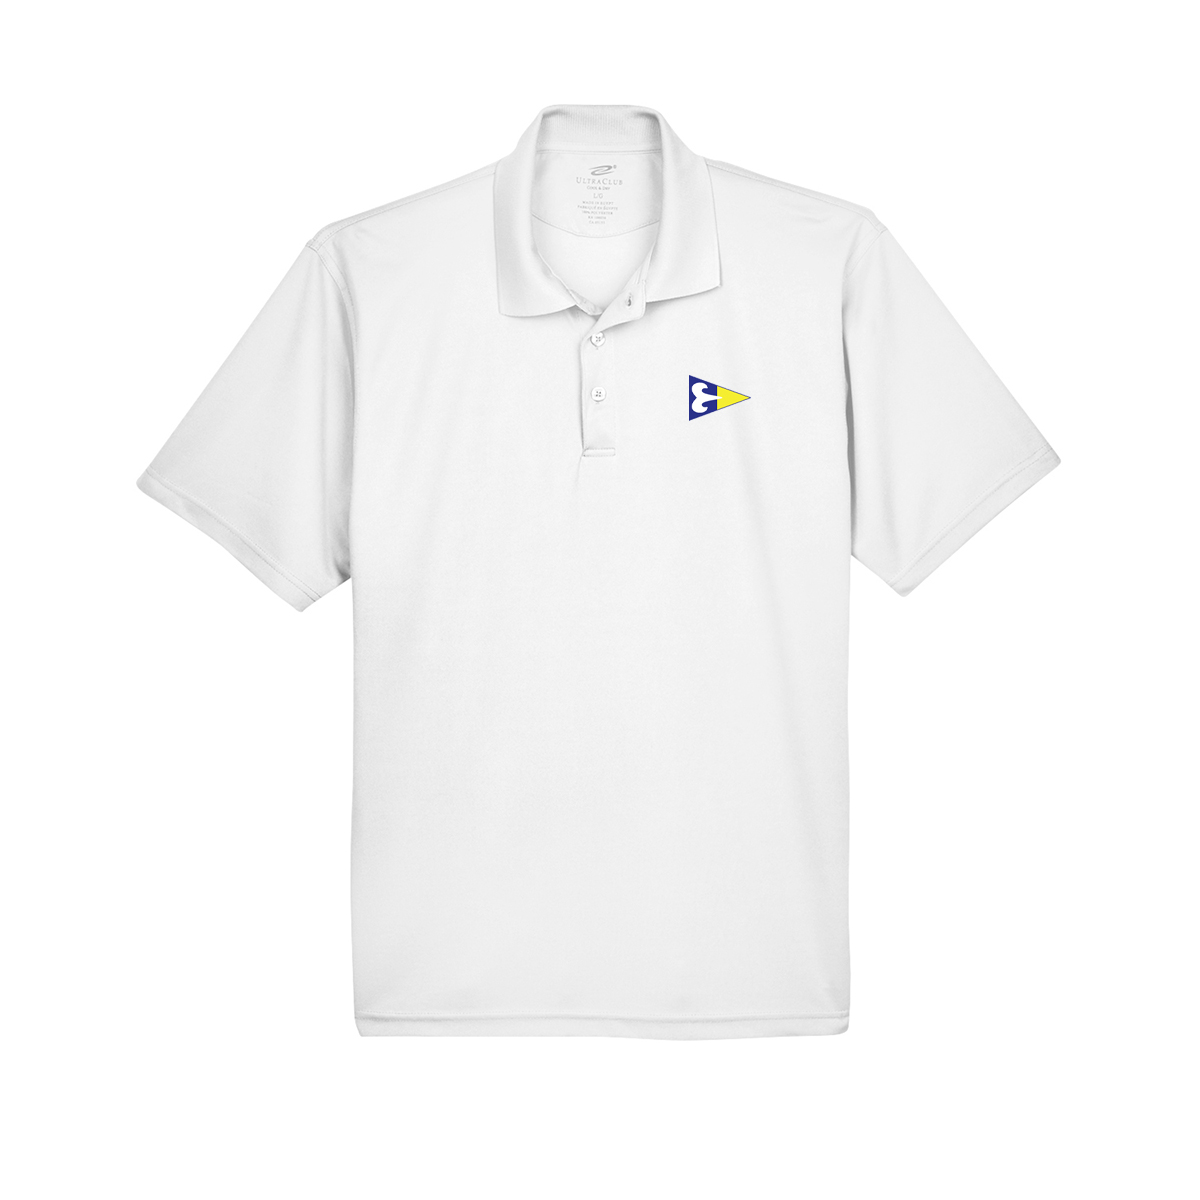 RIYC - M'S TECHNICAL POLO